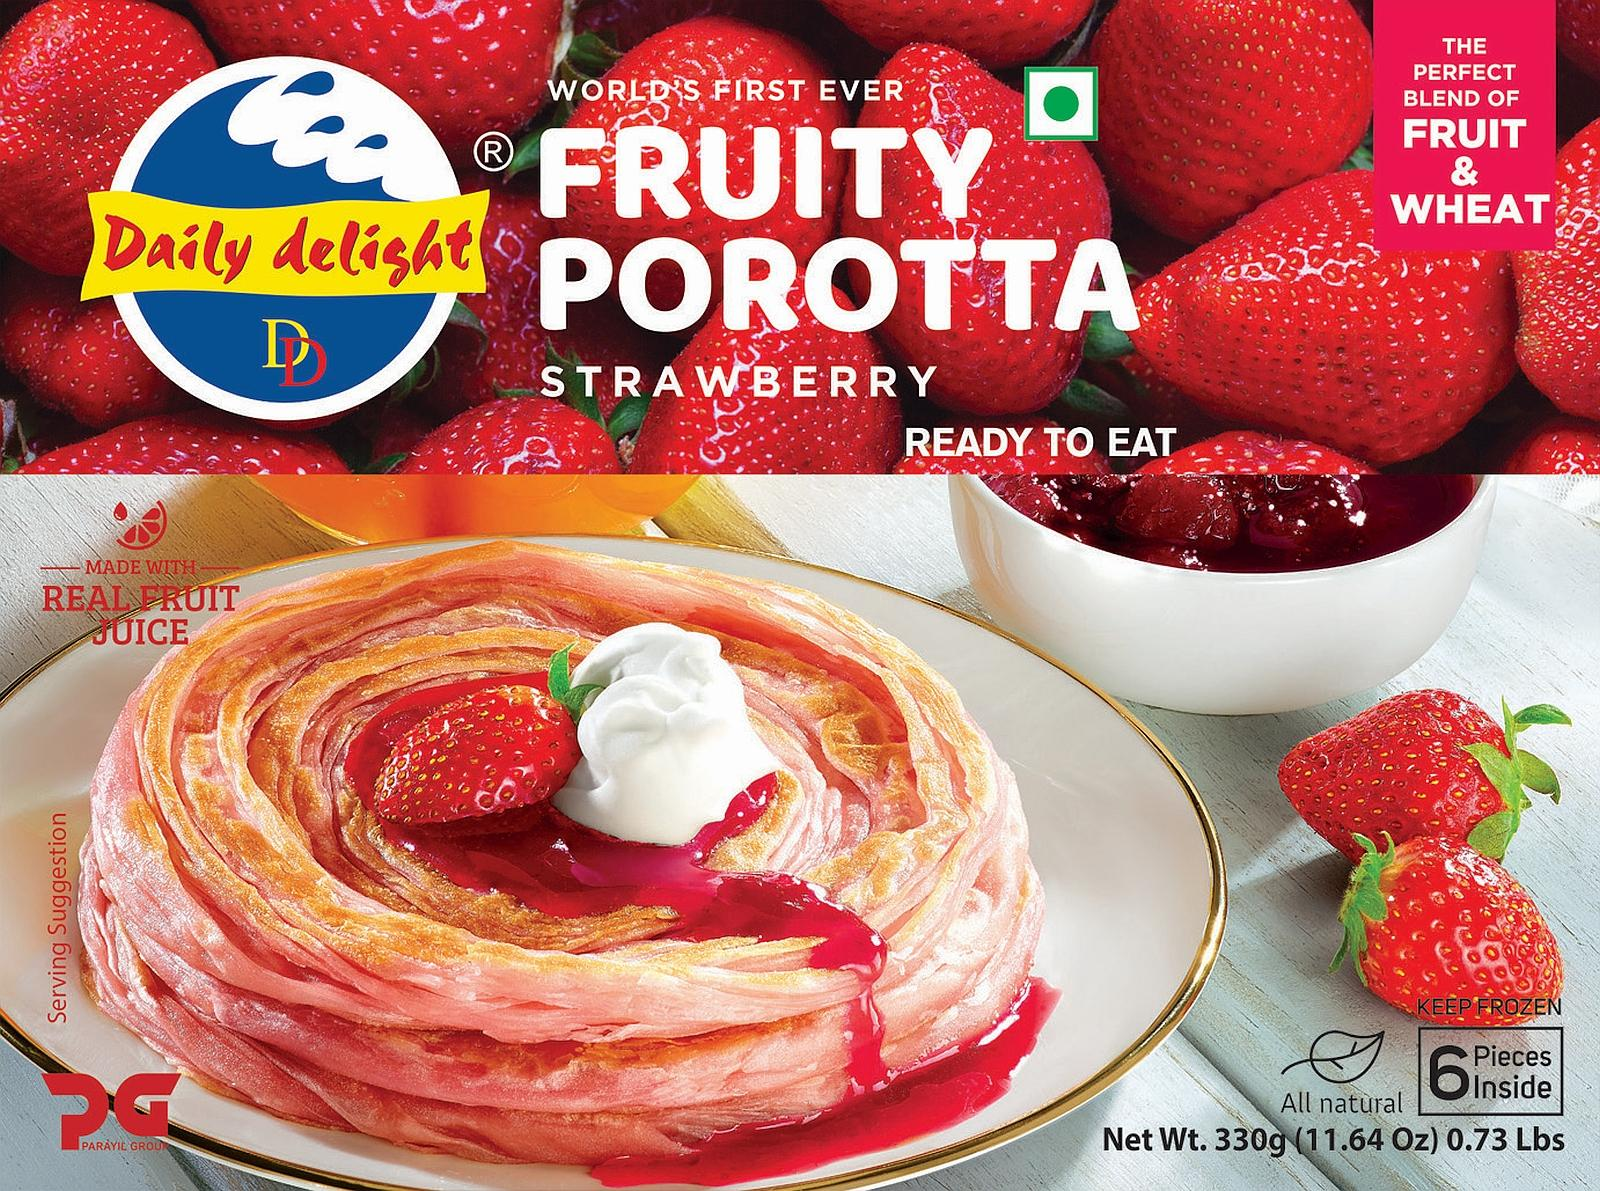 Daily Delight Strawberry Porotta